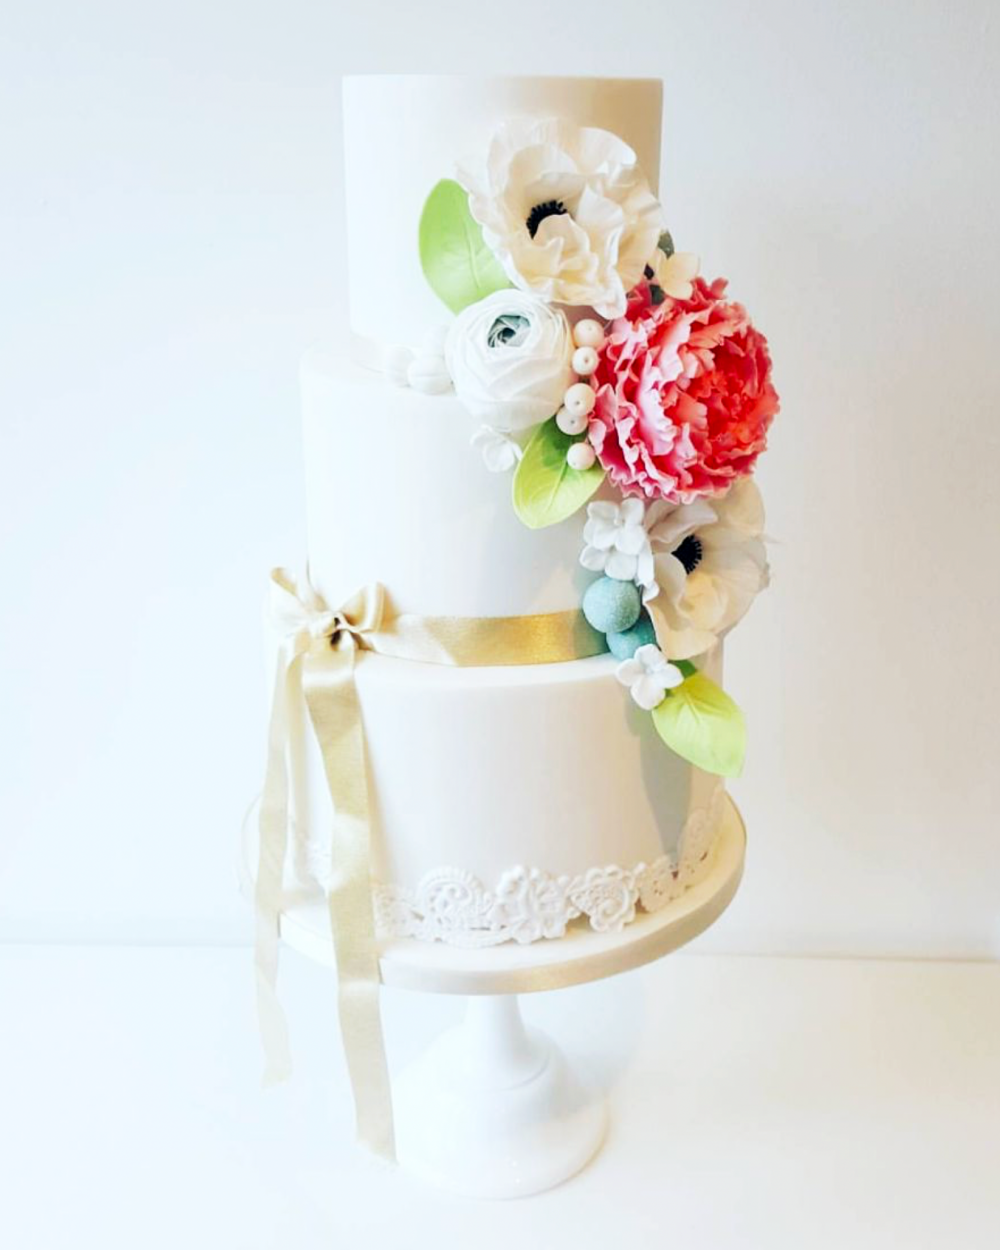 DOTTY ROSE WEDDING CAKE DESIGN FLORAL SUGARCRAFT.png